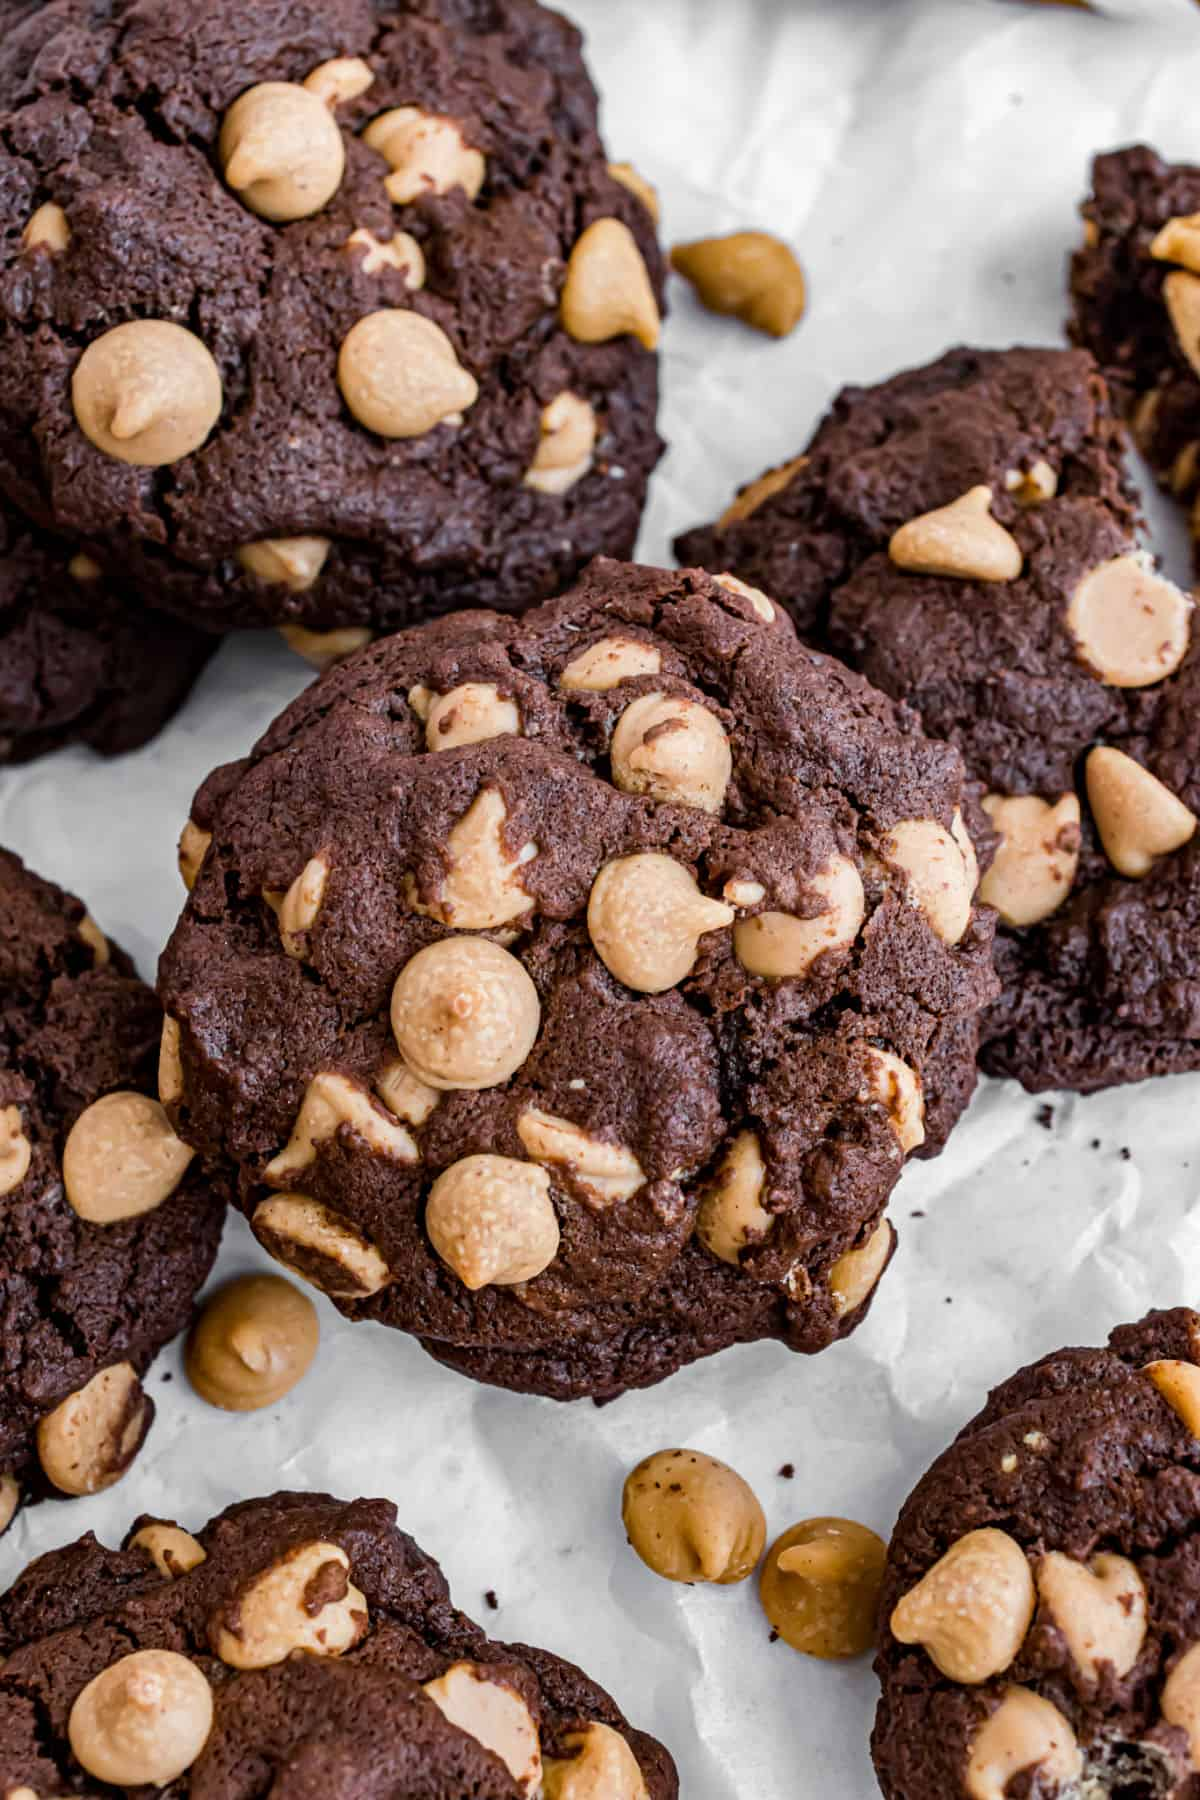 Chocolate peanut butter cookies stacked on parcment paper.